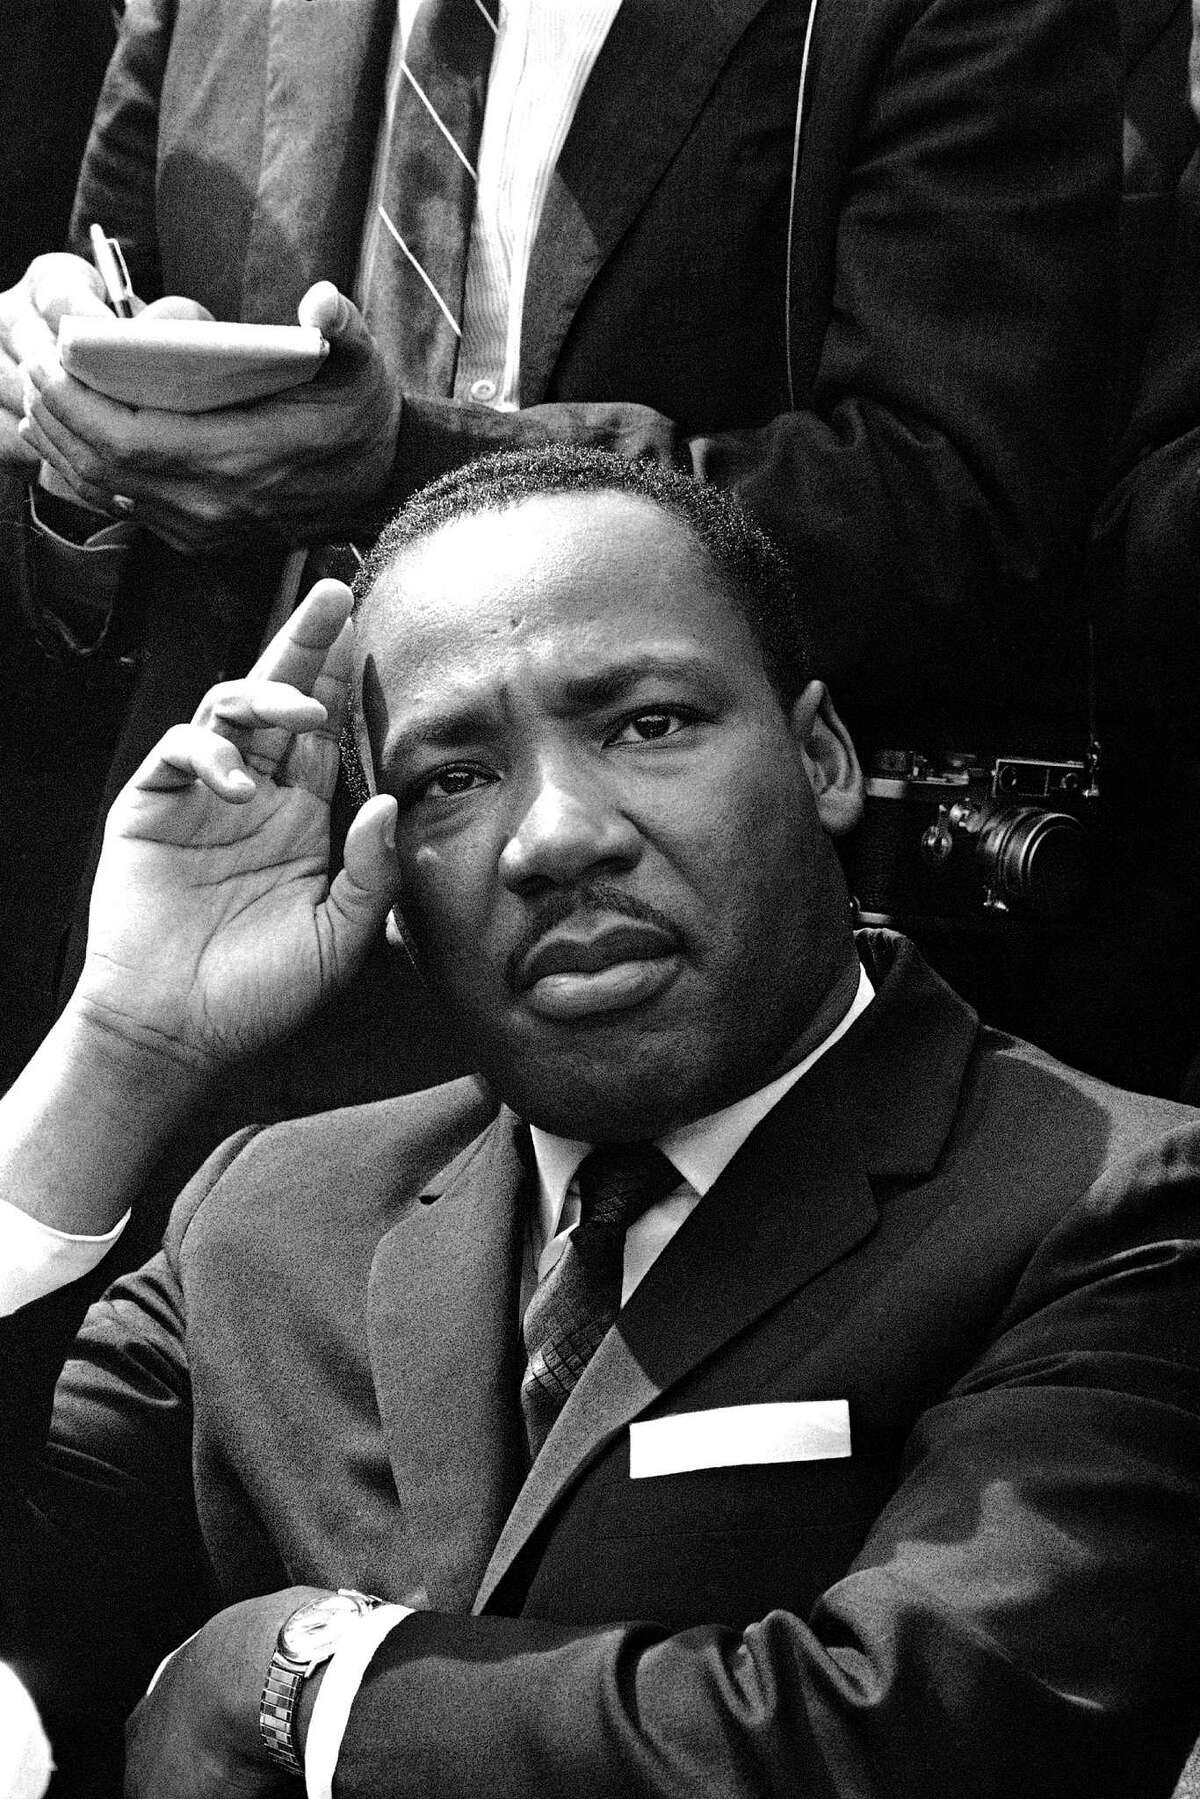 """""""Injustice anywhere is a threat to justice everywhere,"""" the Rev. Martin Luther King Jr. wrote in a jail cell in 1963."""